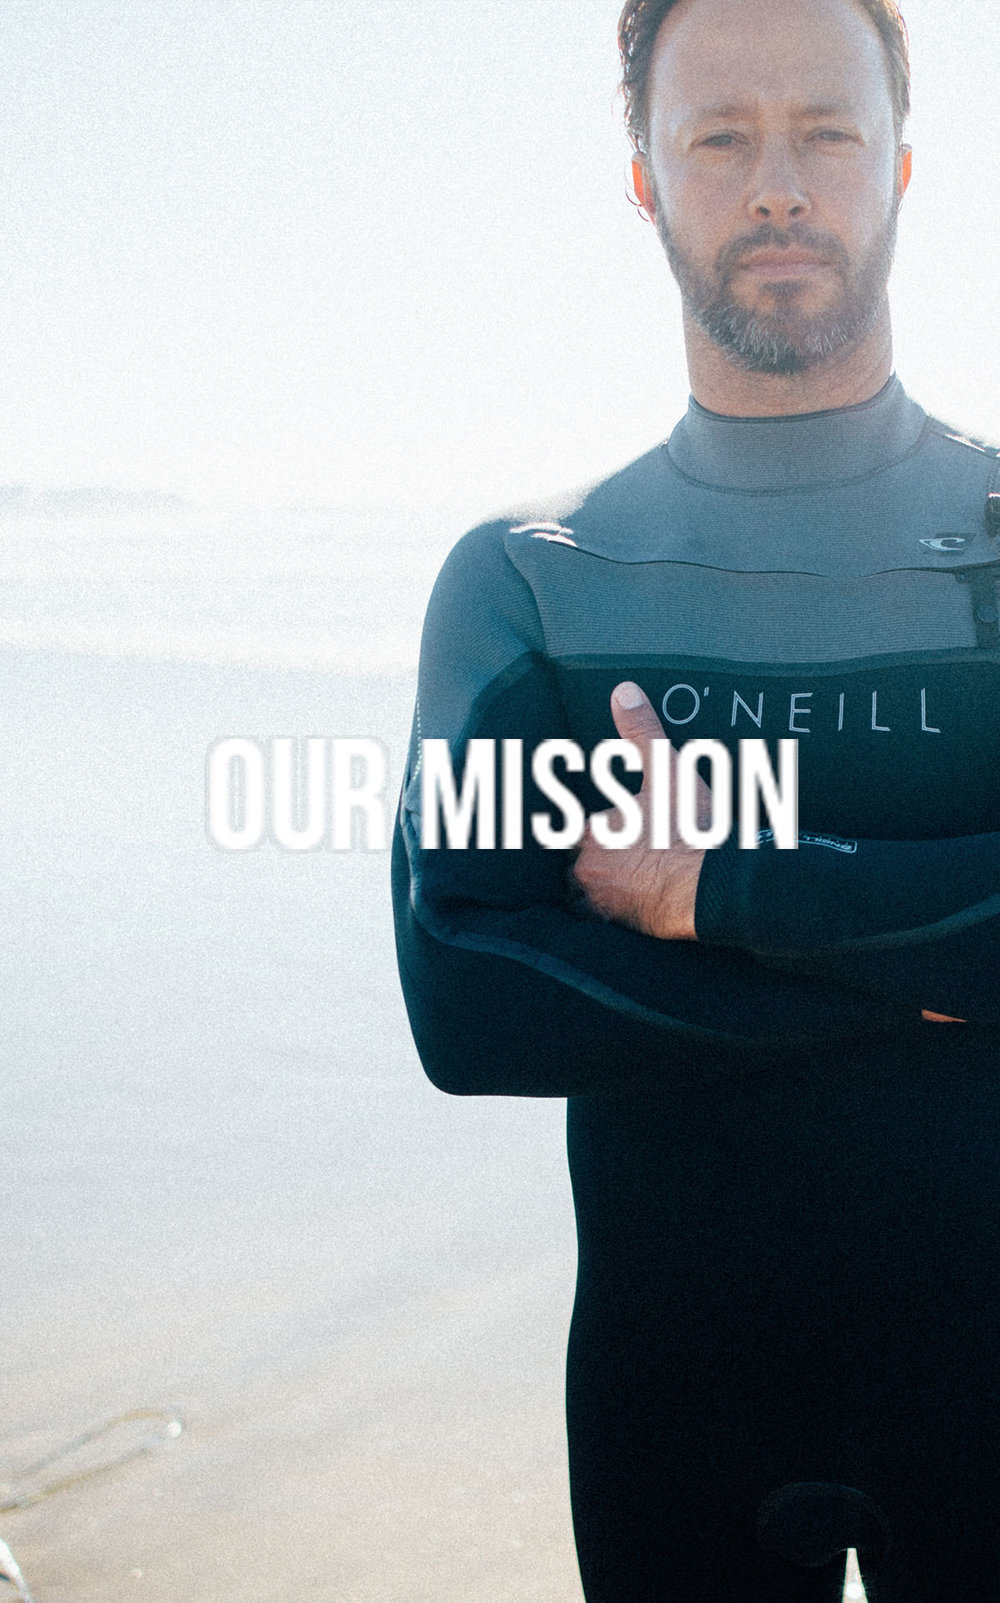 Our Mission-1.jpg